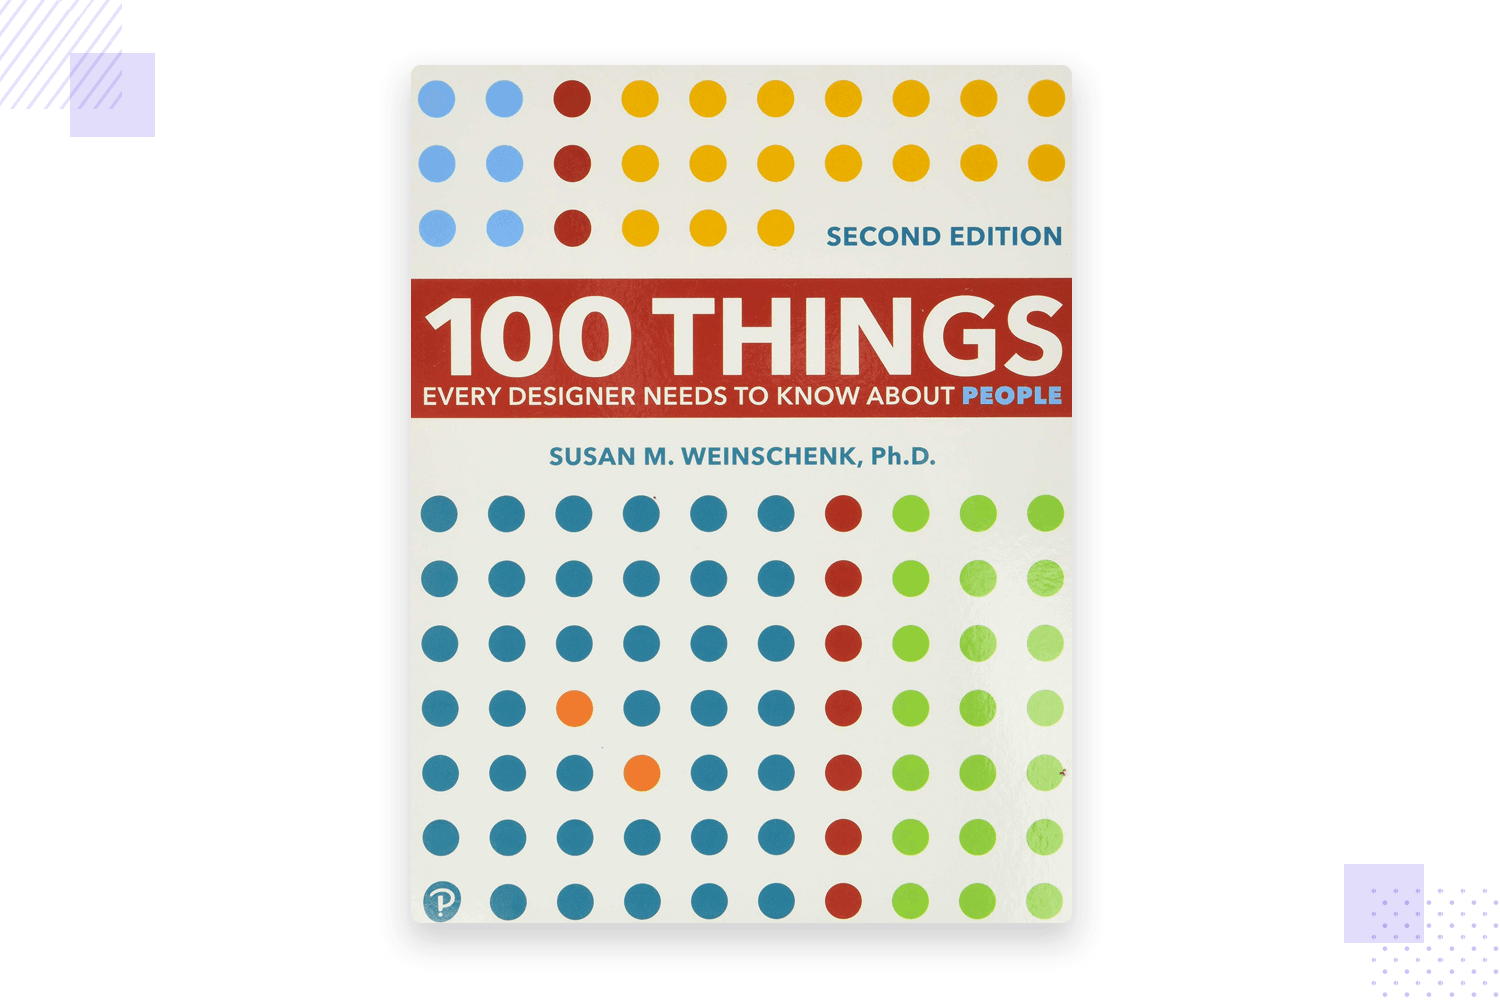 ux design book: things designers need to know about people